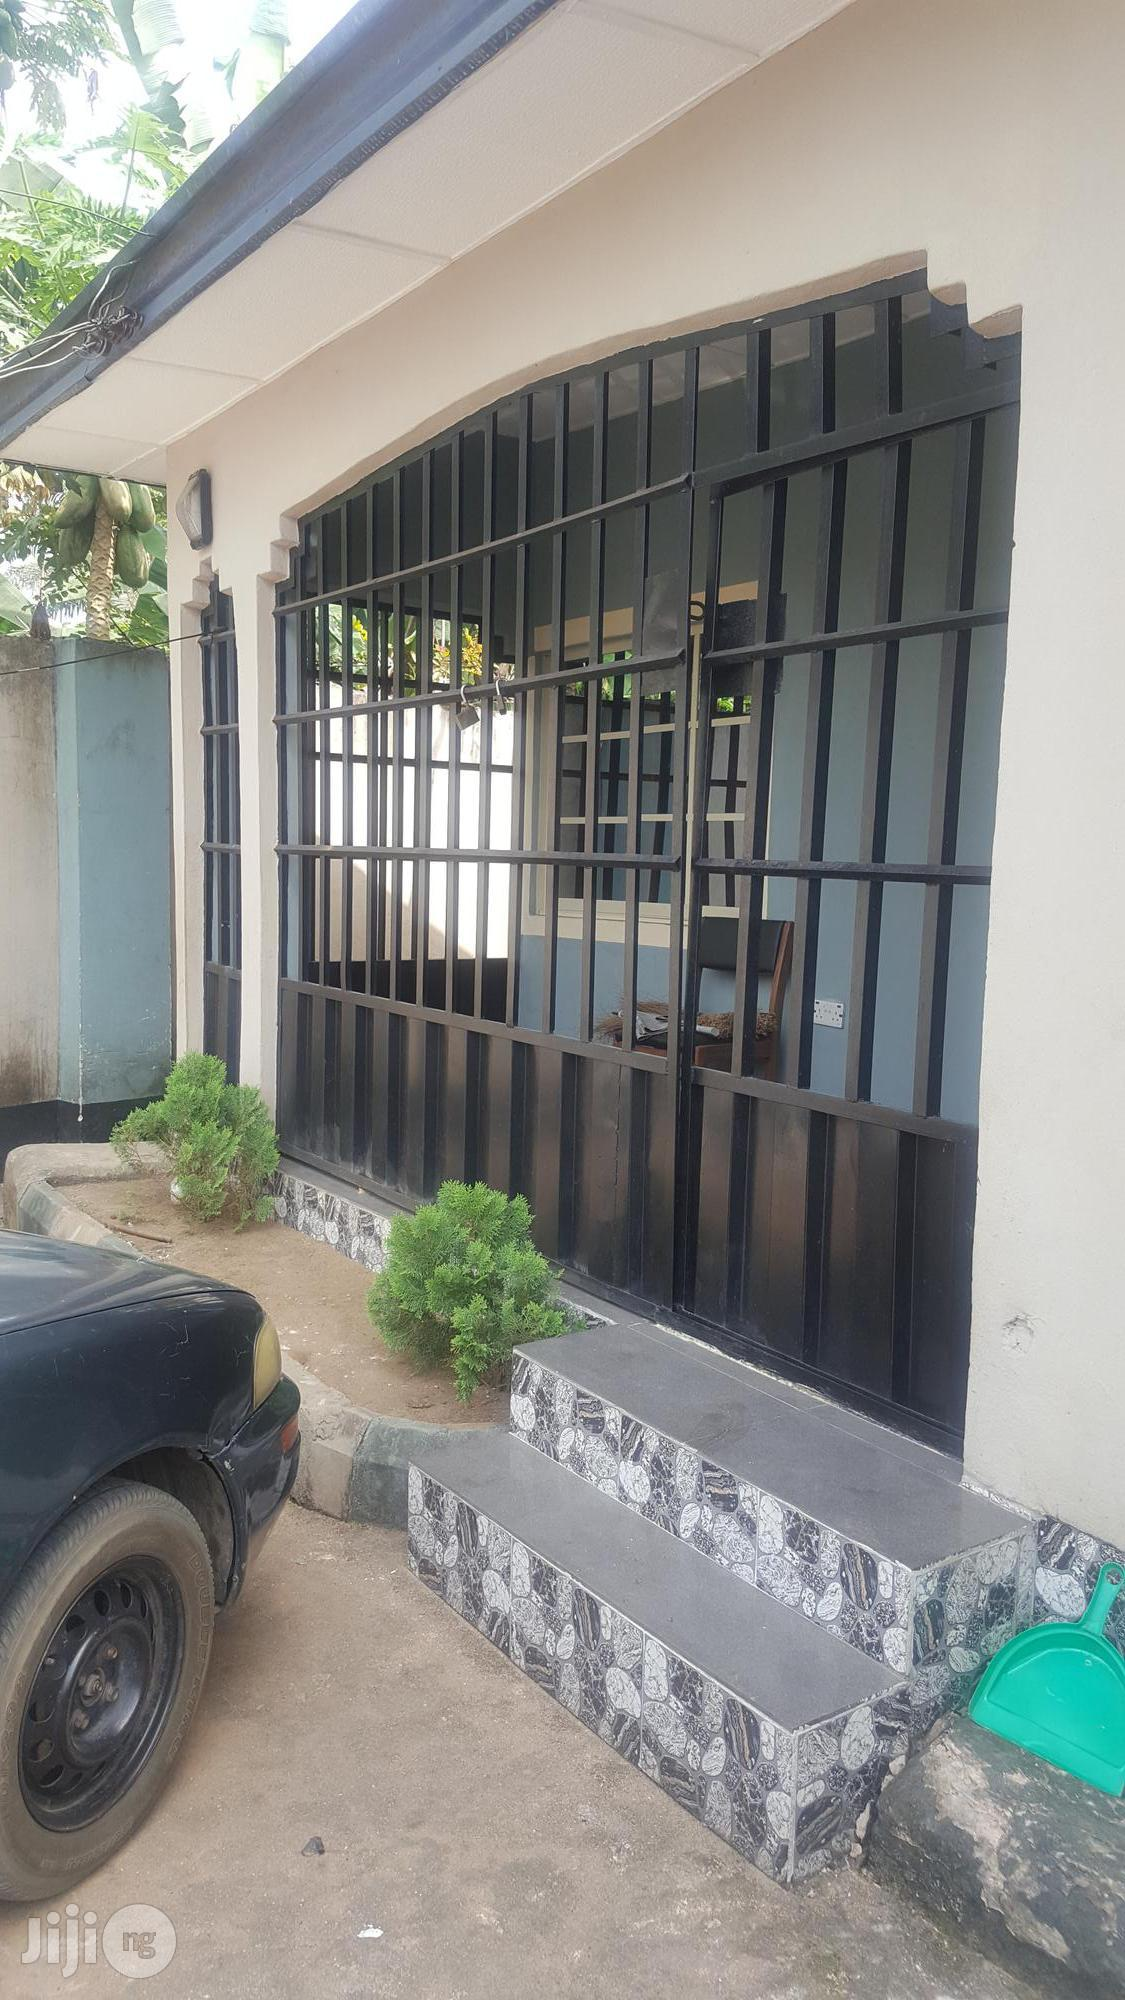 3 Bedrooms Flat And 1 Bedroom Flat Bungalow Nung Oku In Uyo For Sale   Houses & Apartments For Sale for sale in Uyo, Akwa Ibom State, Nigeria